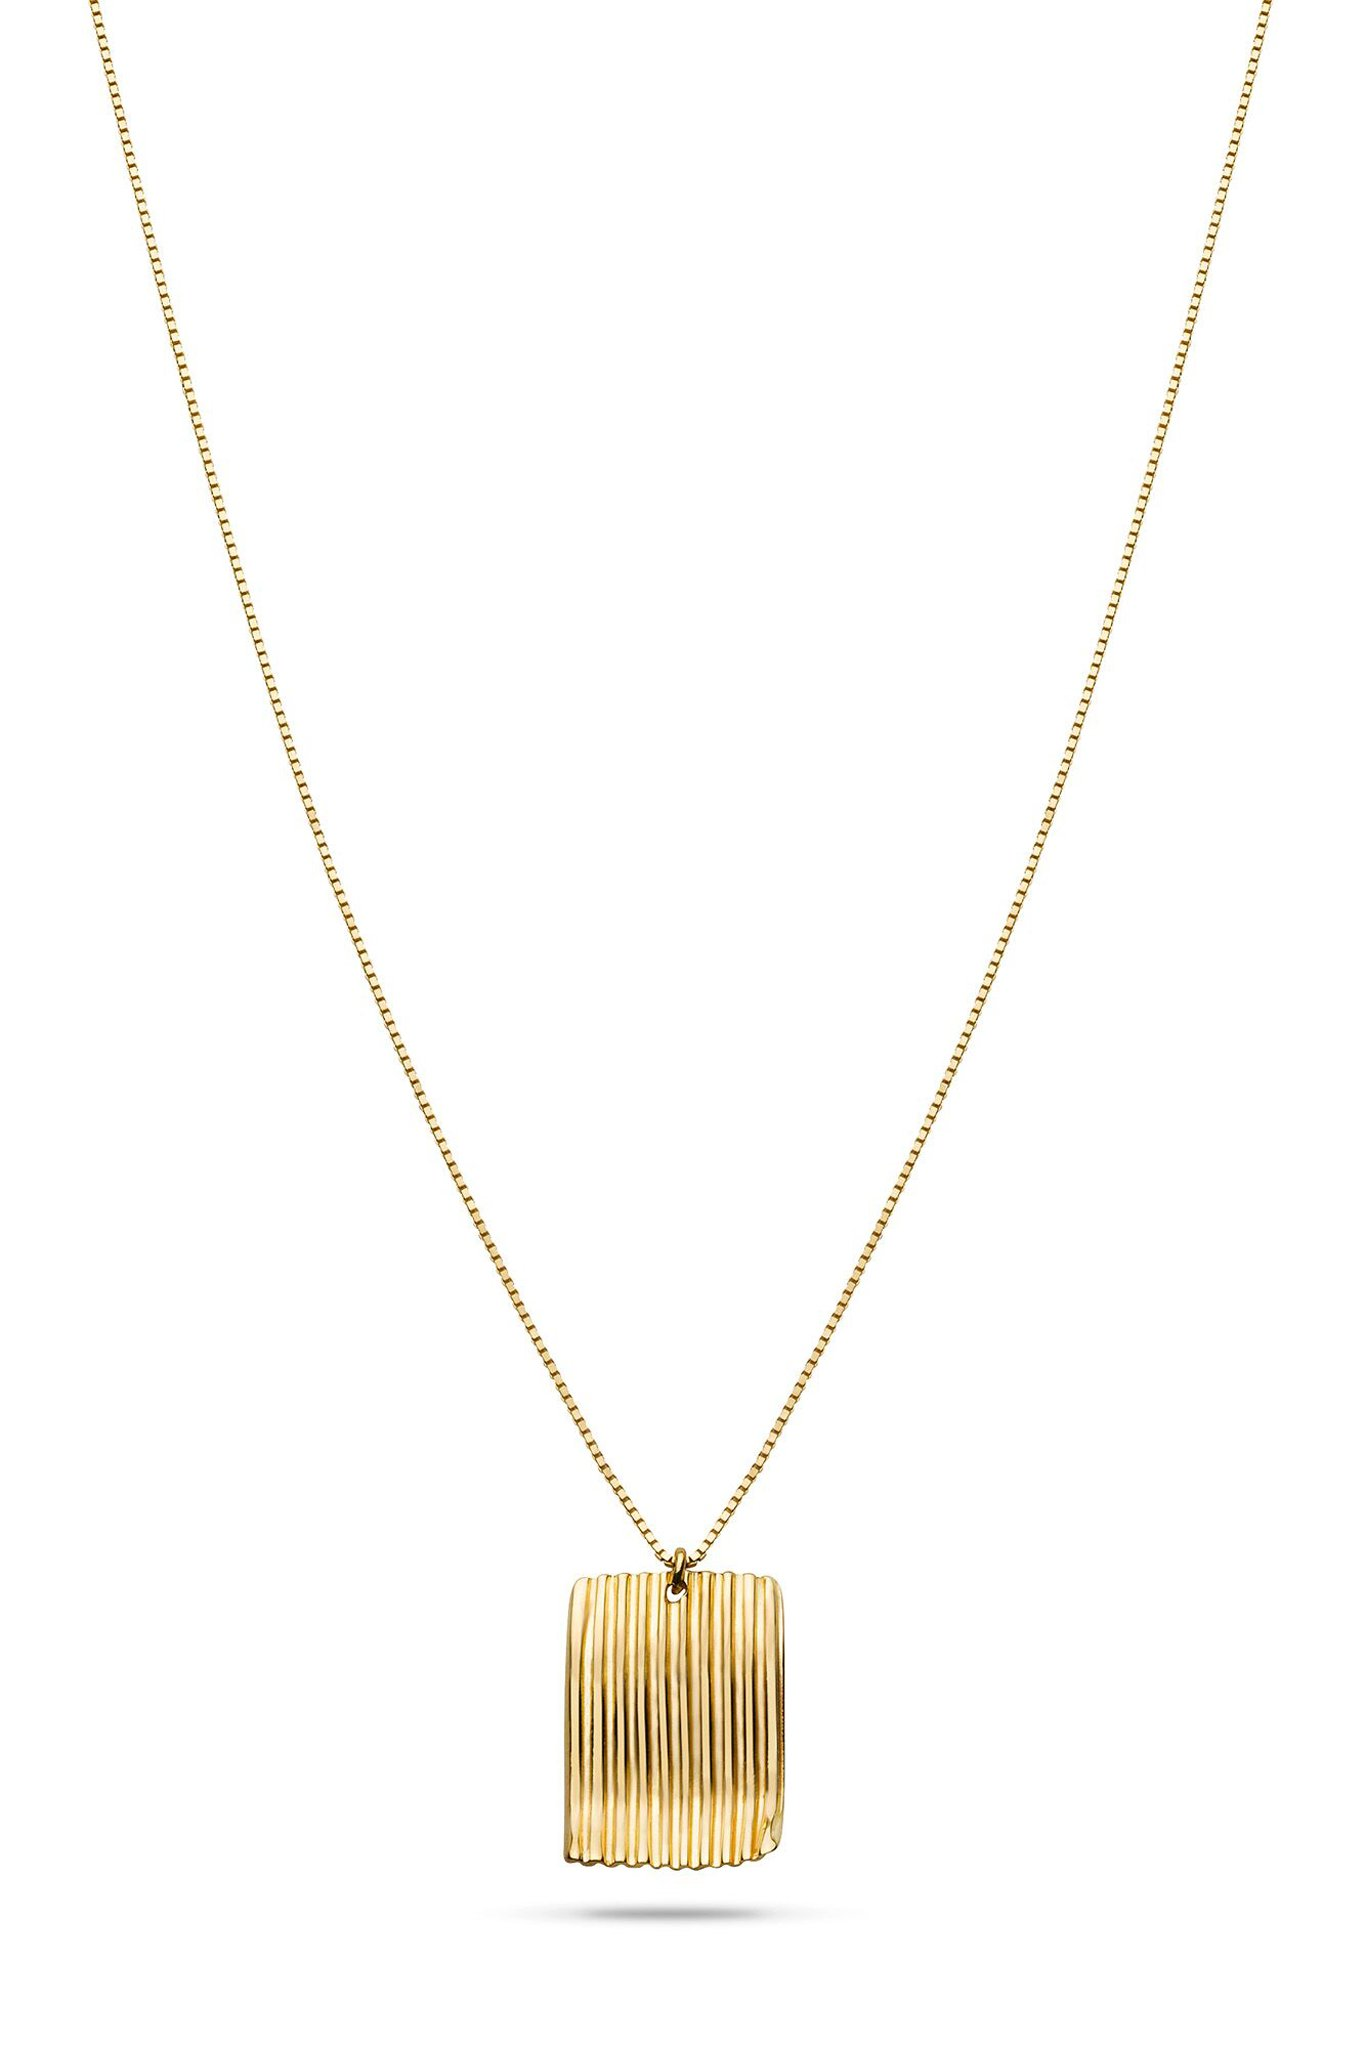 Jukserei square chips necklace